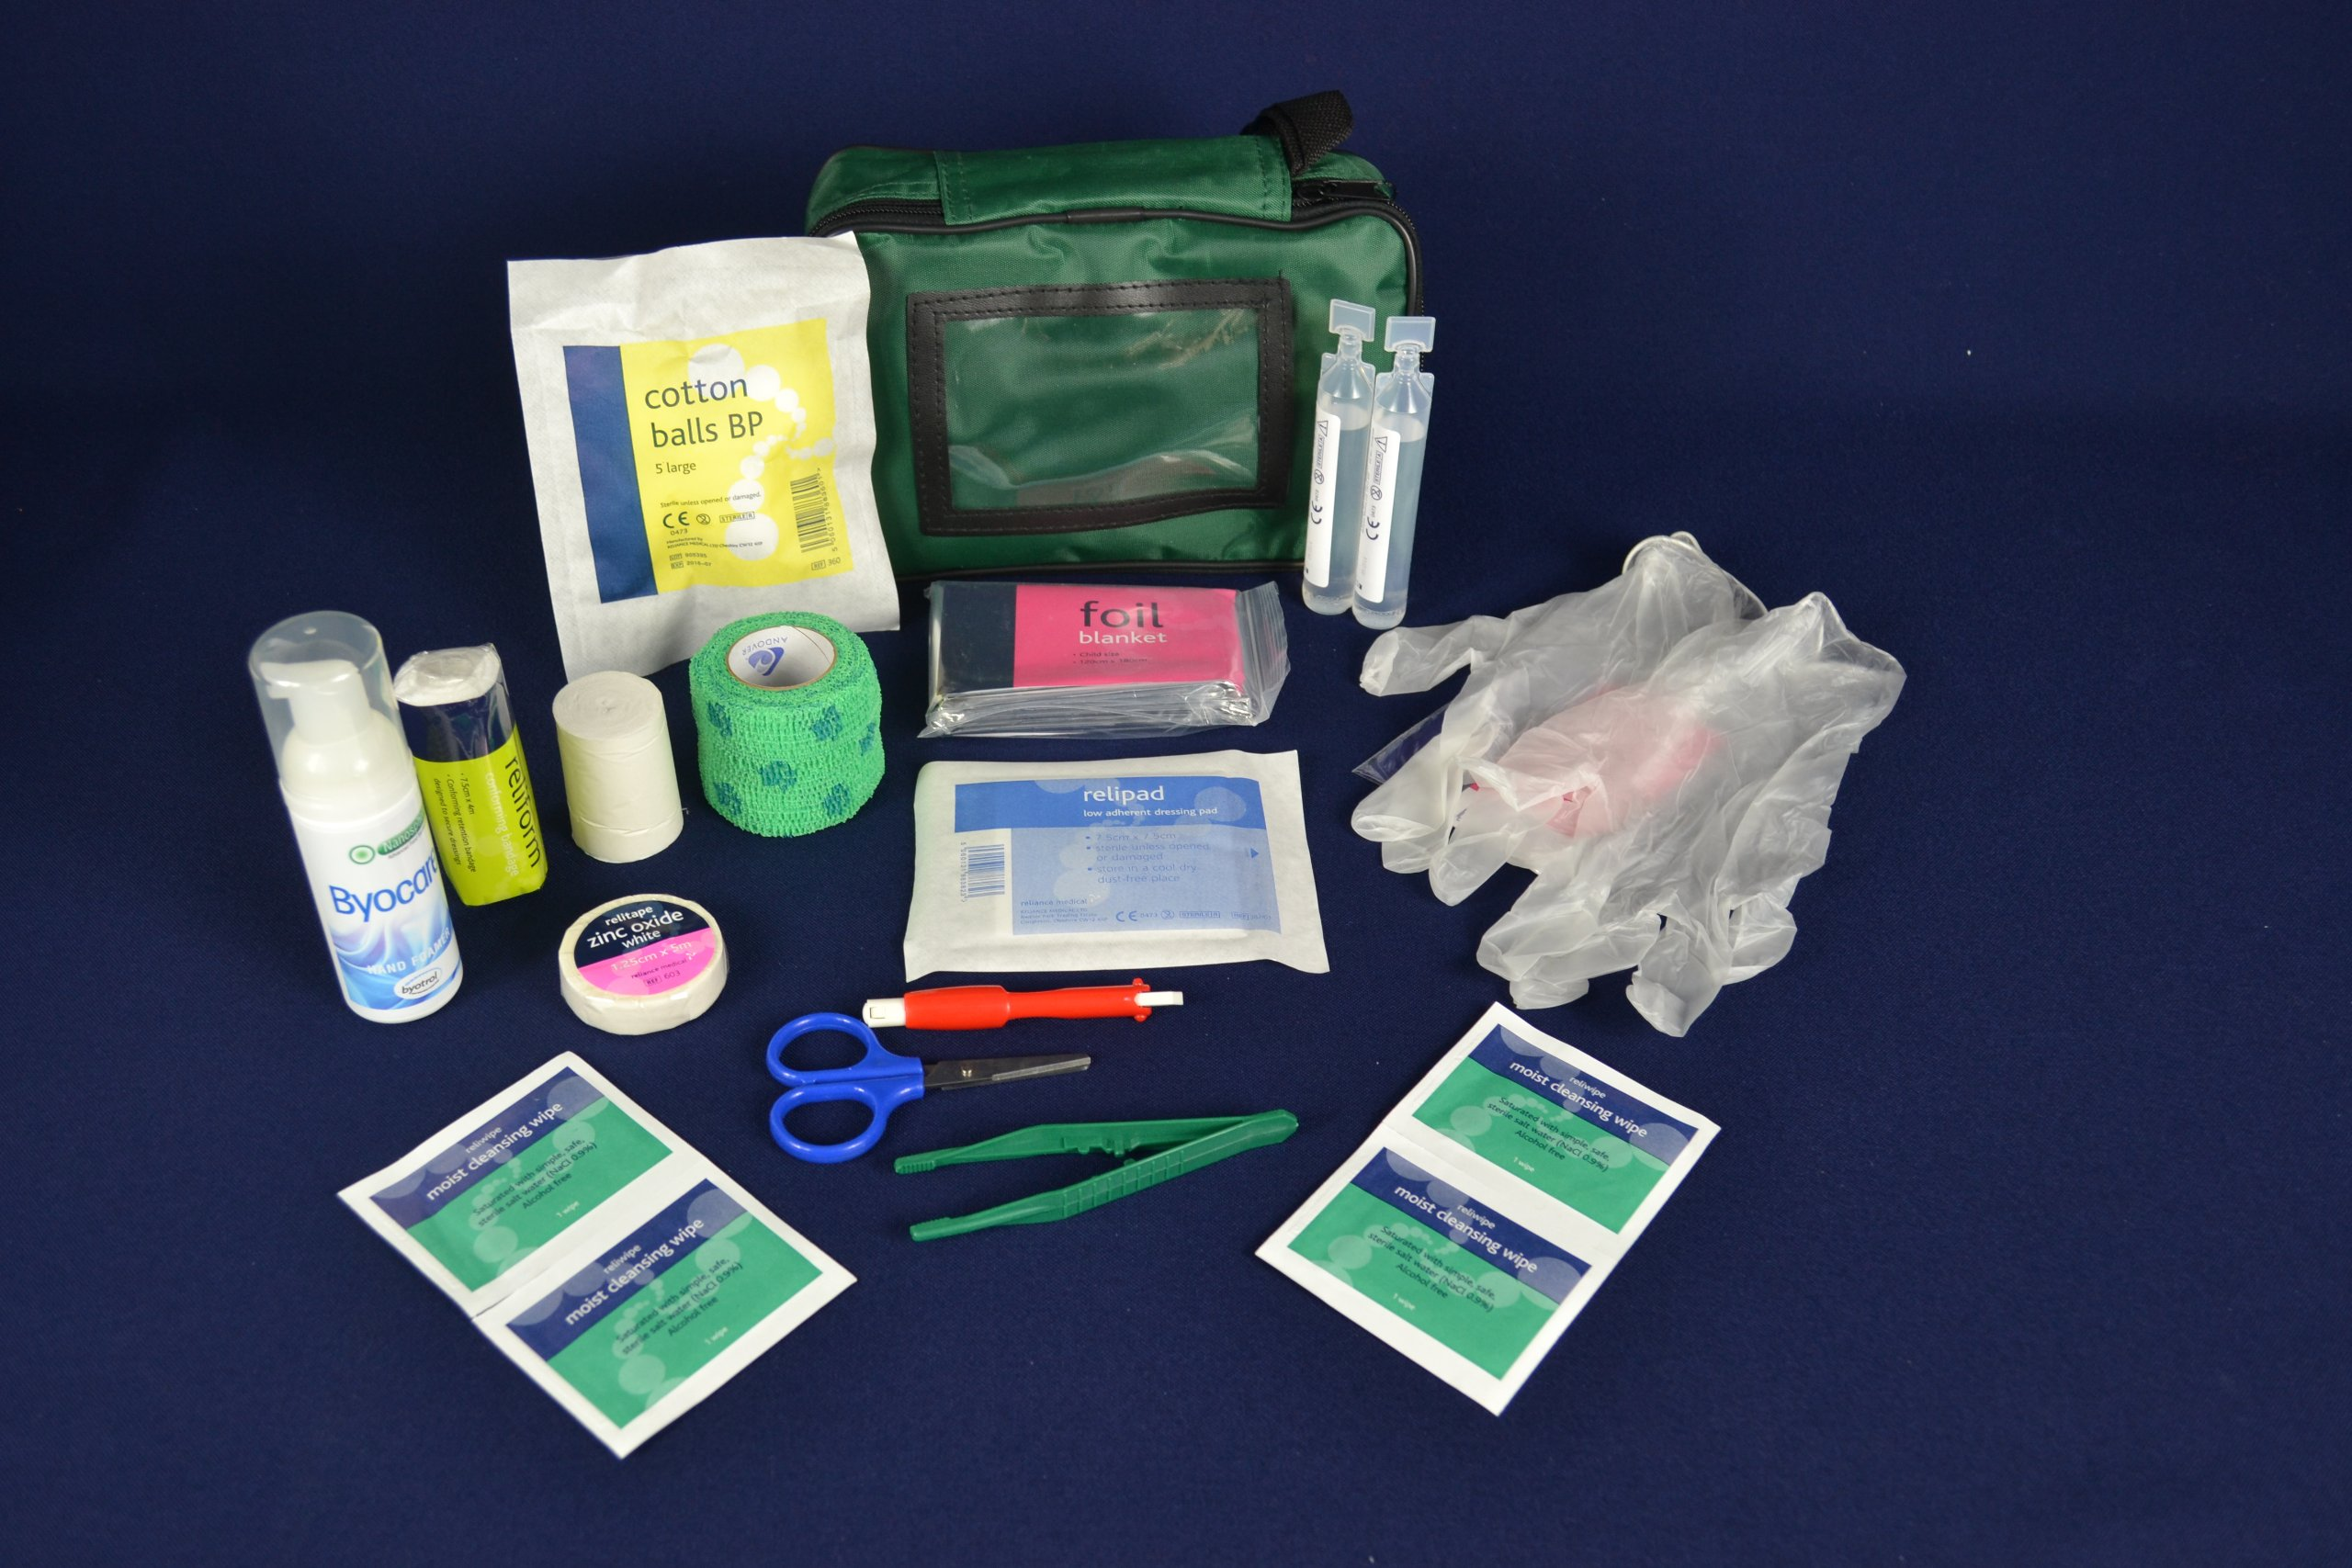 Warwick Whelping Boxes Pet First Aid Kit Comprehensive with paw print bandage and 50ml Hand sanitiser foamer CPR guide and Toxic foods leaflets included 3